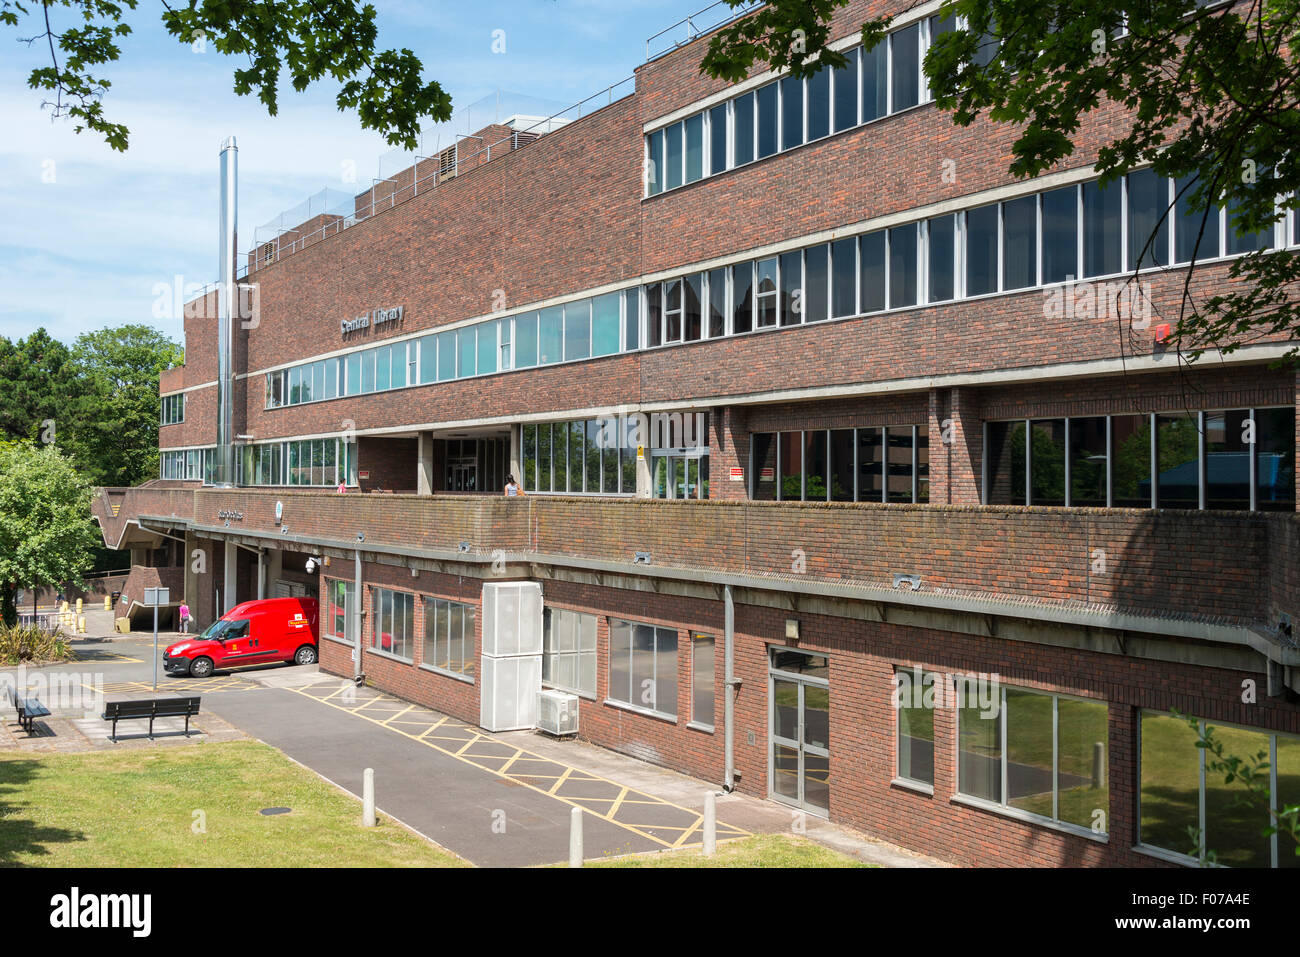 Central Library, Cheam Road, Sutton, London Borough of Sutton, Greater London, England, United Kingdom - Stock Image